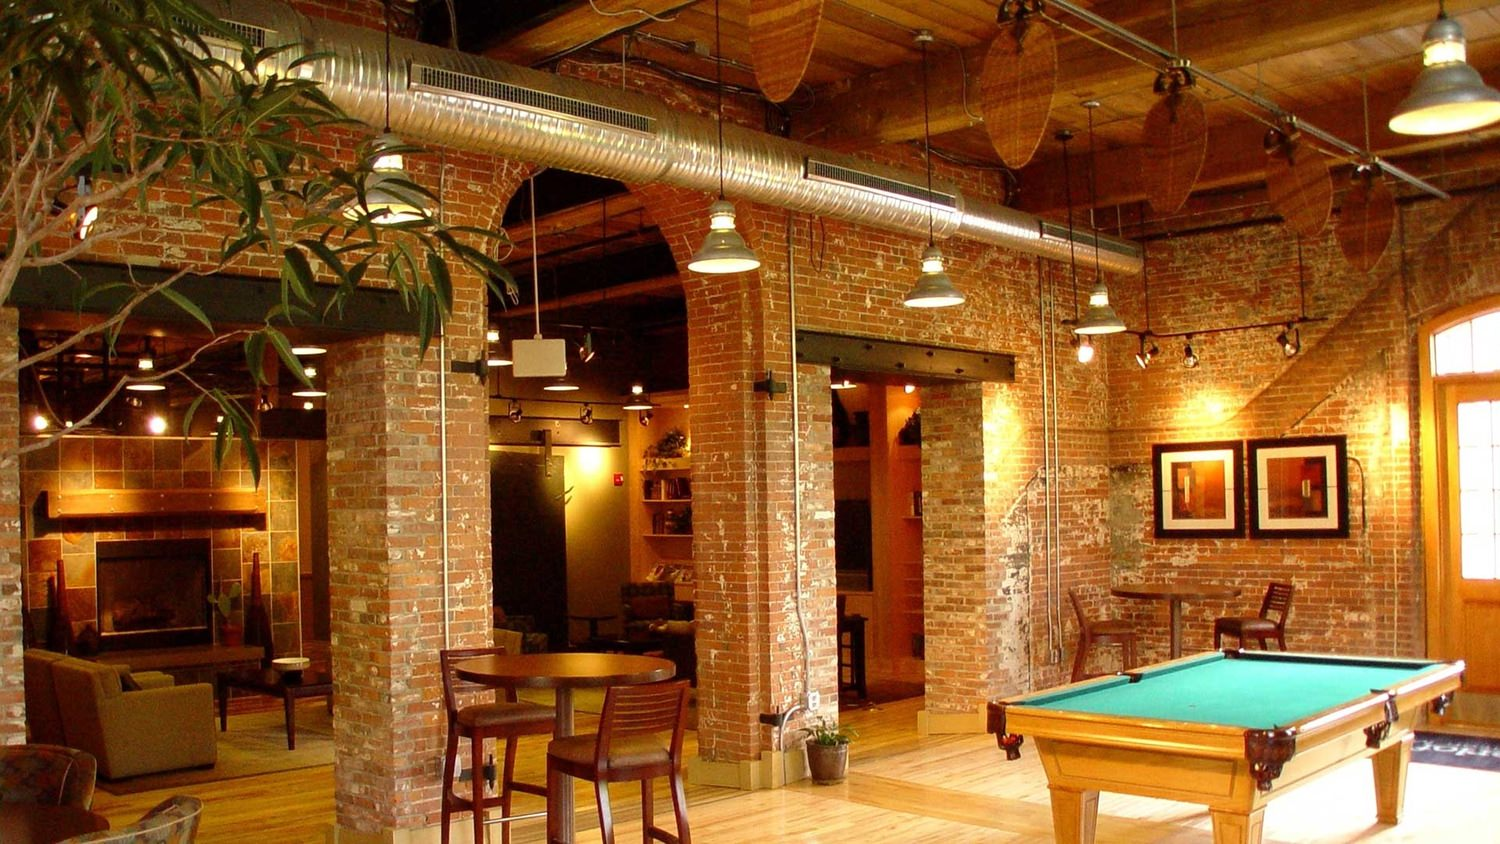 A game room inside of a brick building that has a billiard table and other furnitures.